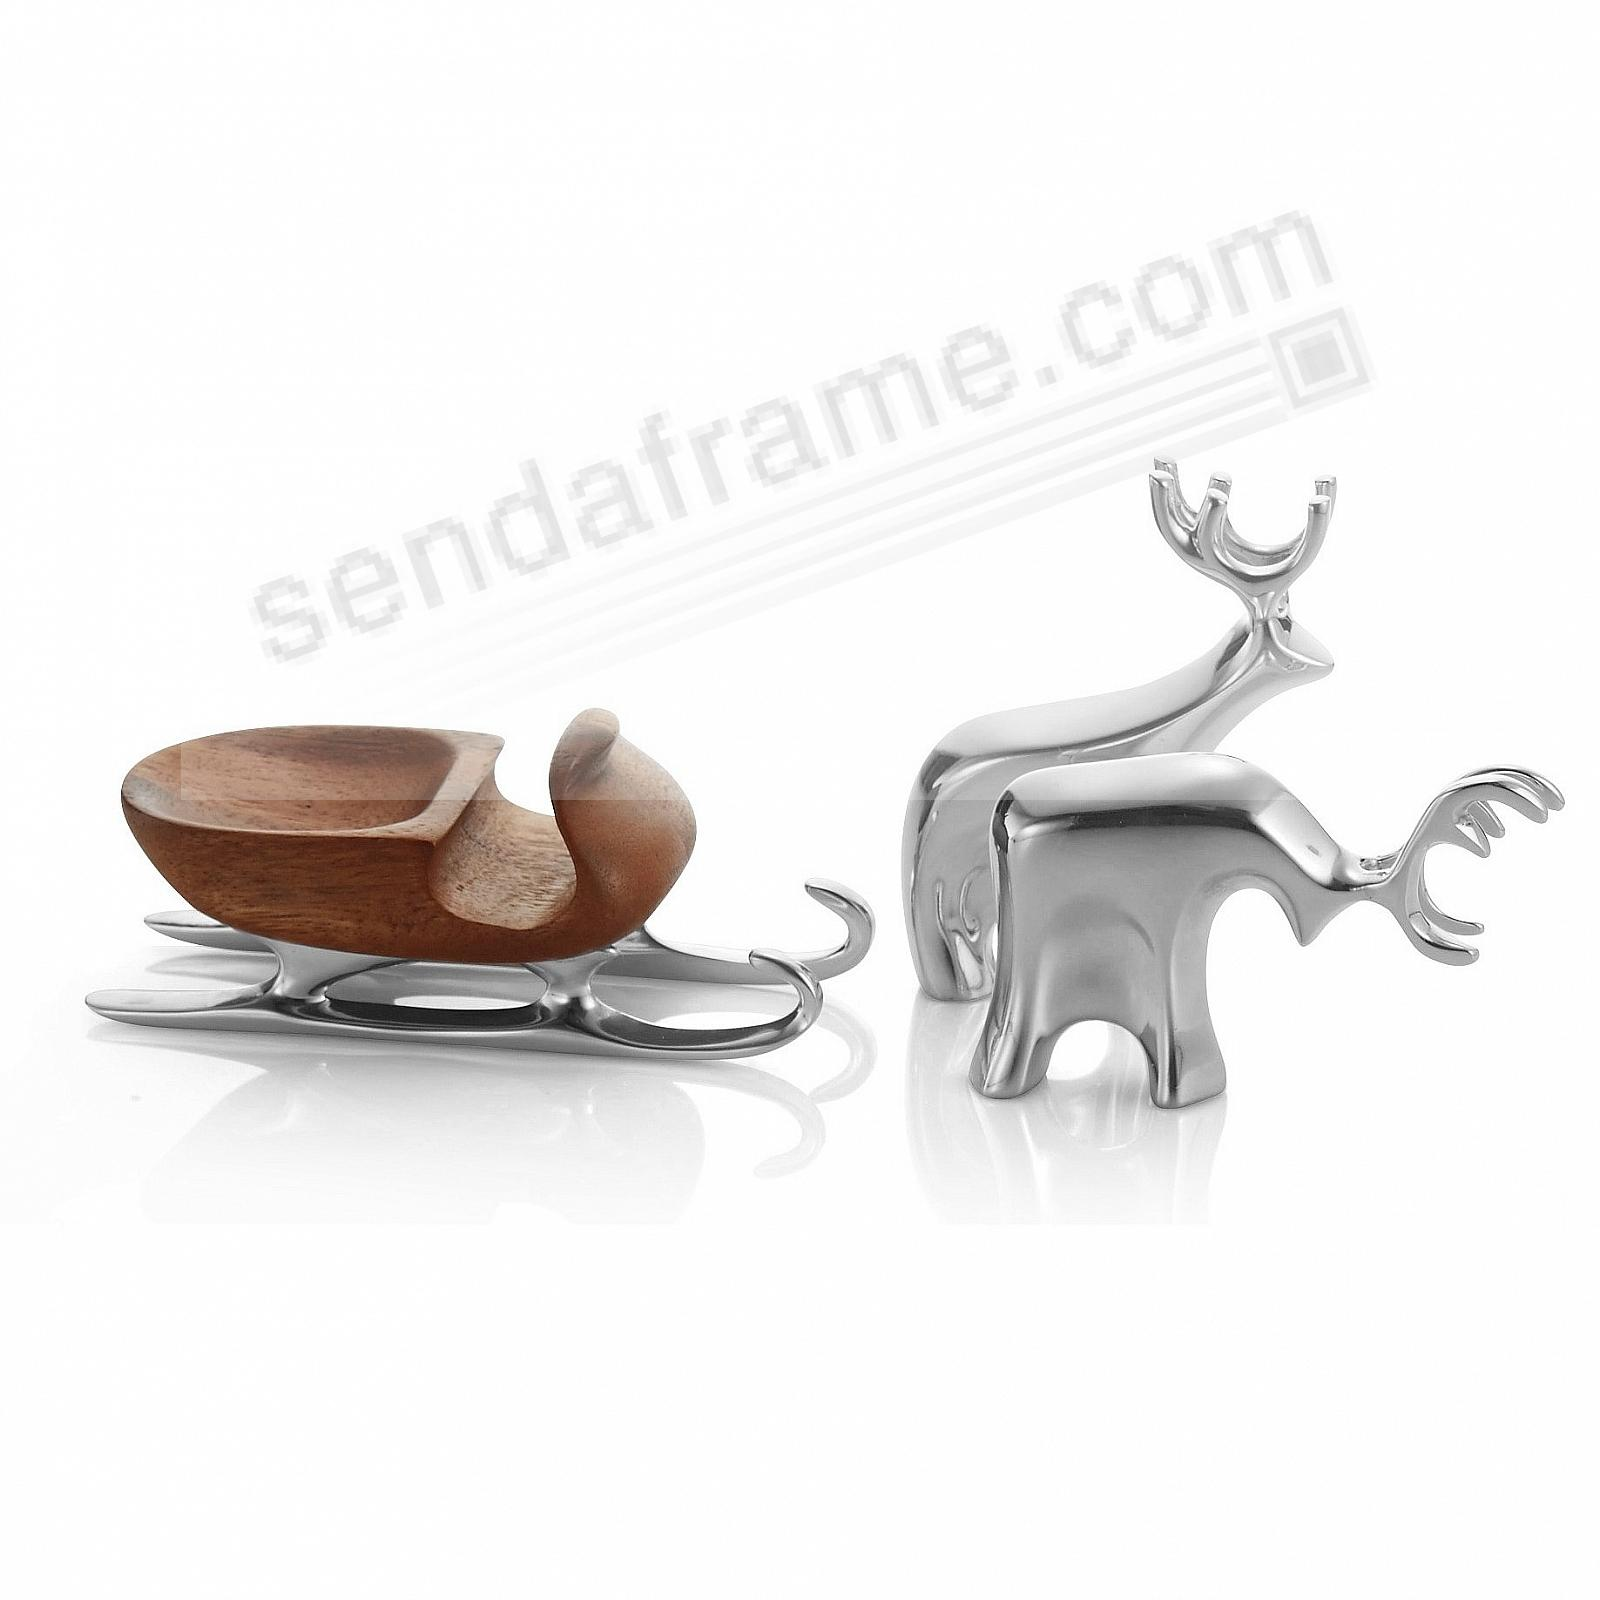 Miniature SLEIGH WITH REINDEER Figurine Set crafted by Nambe®